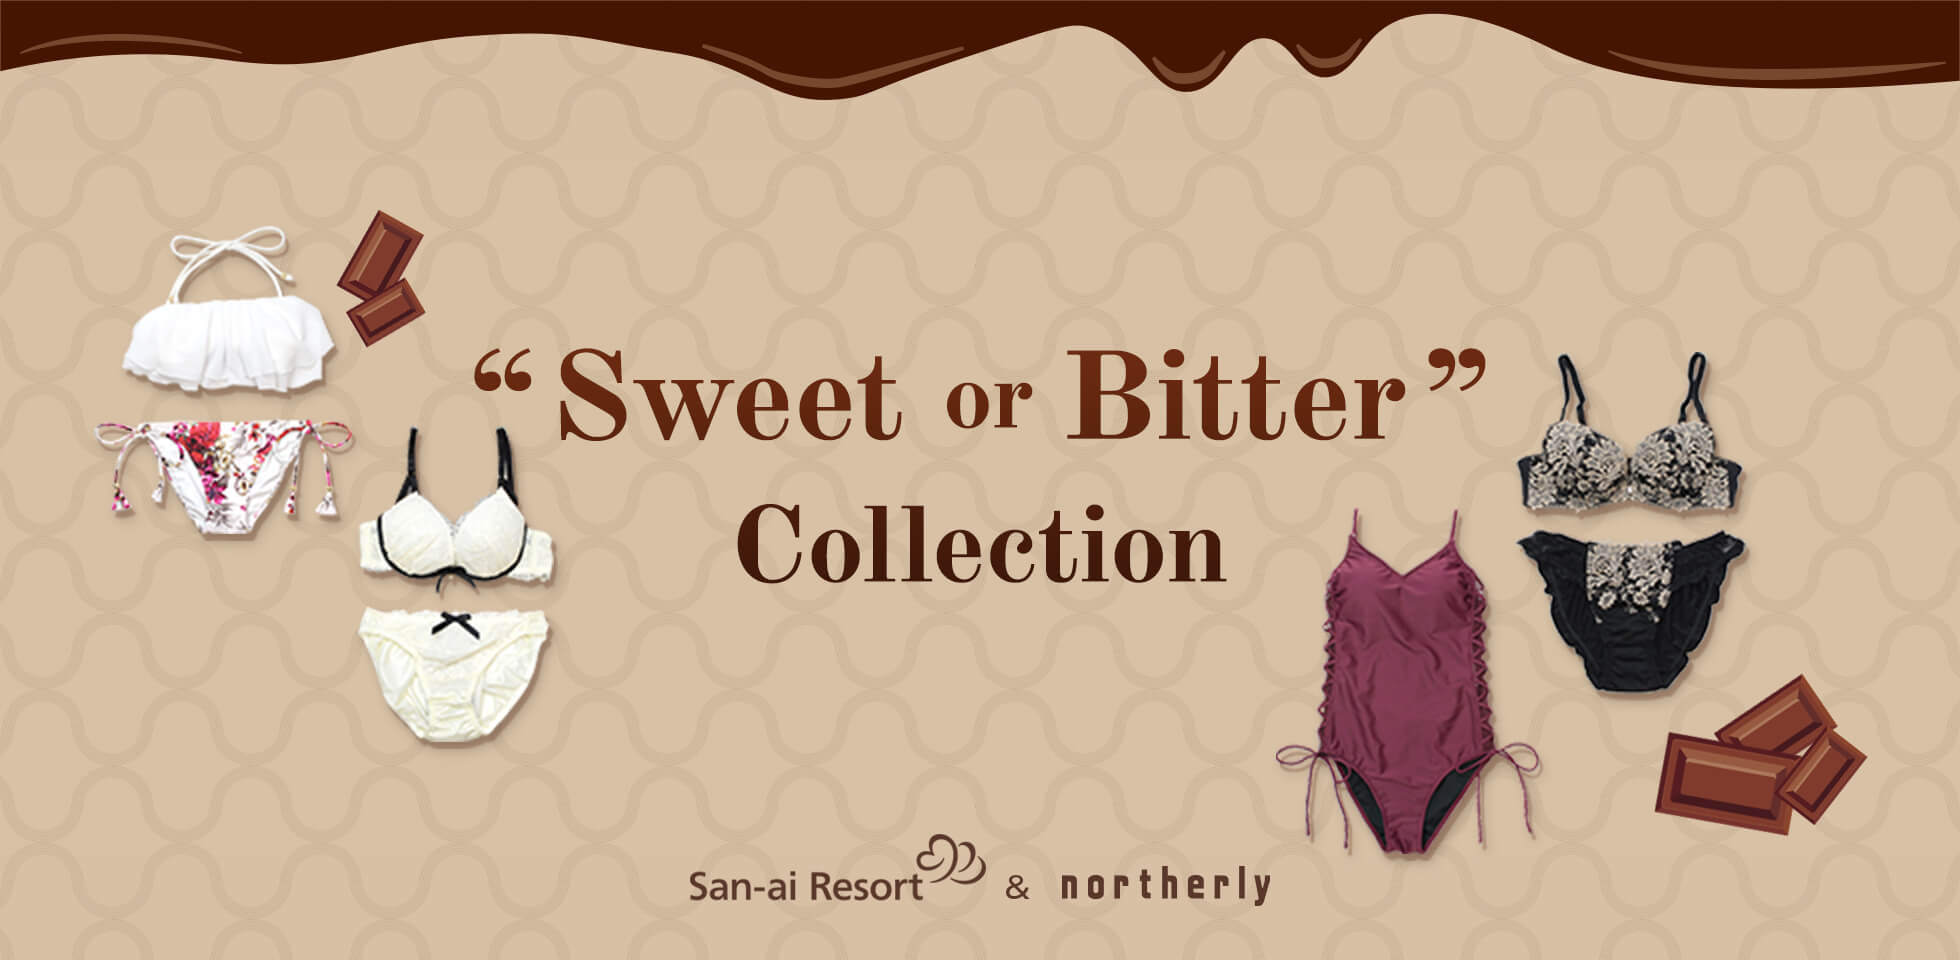 Sweet or Bitter Collection